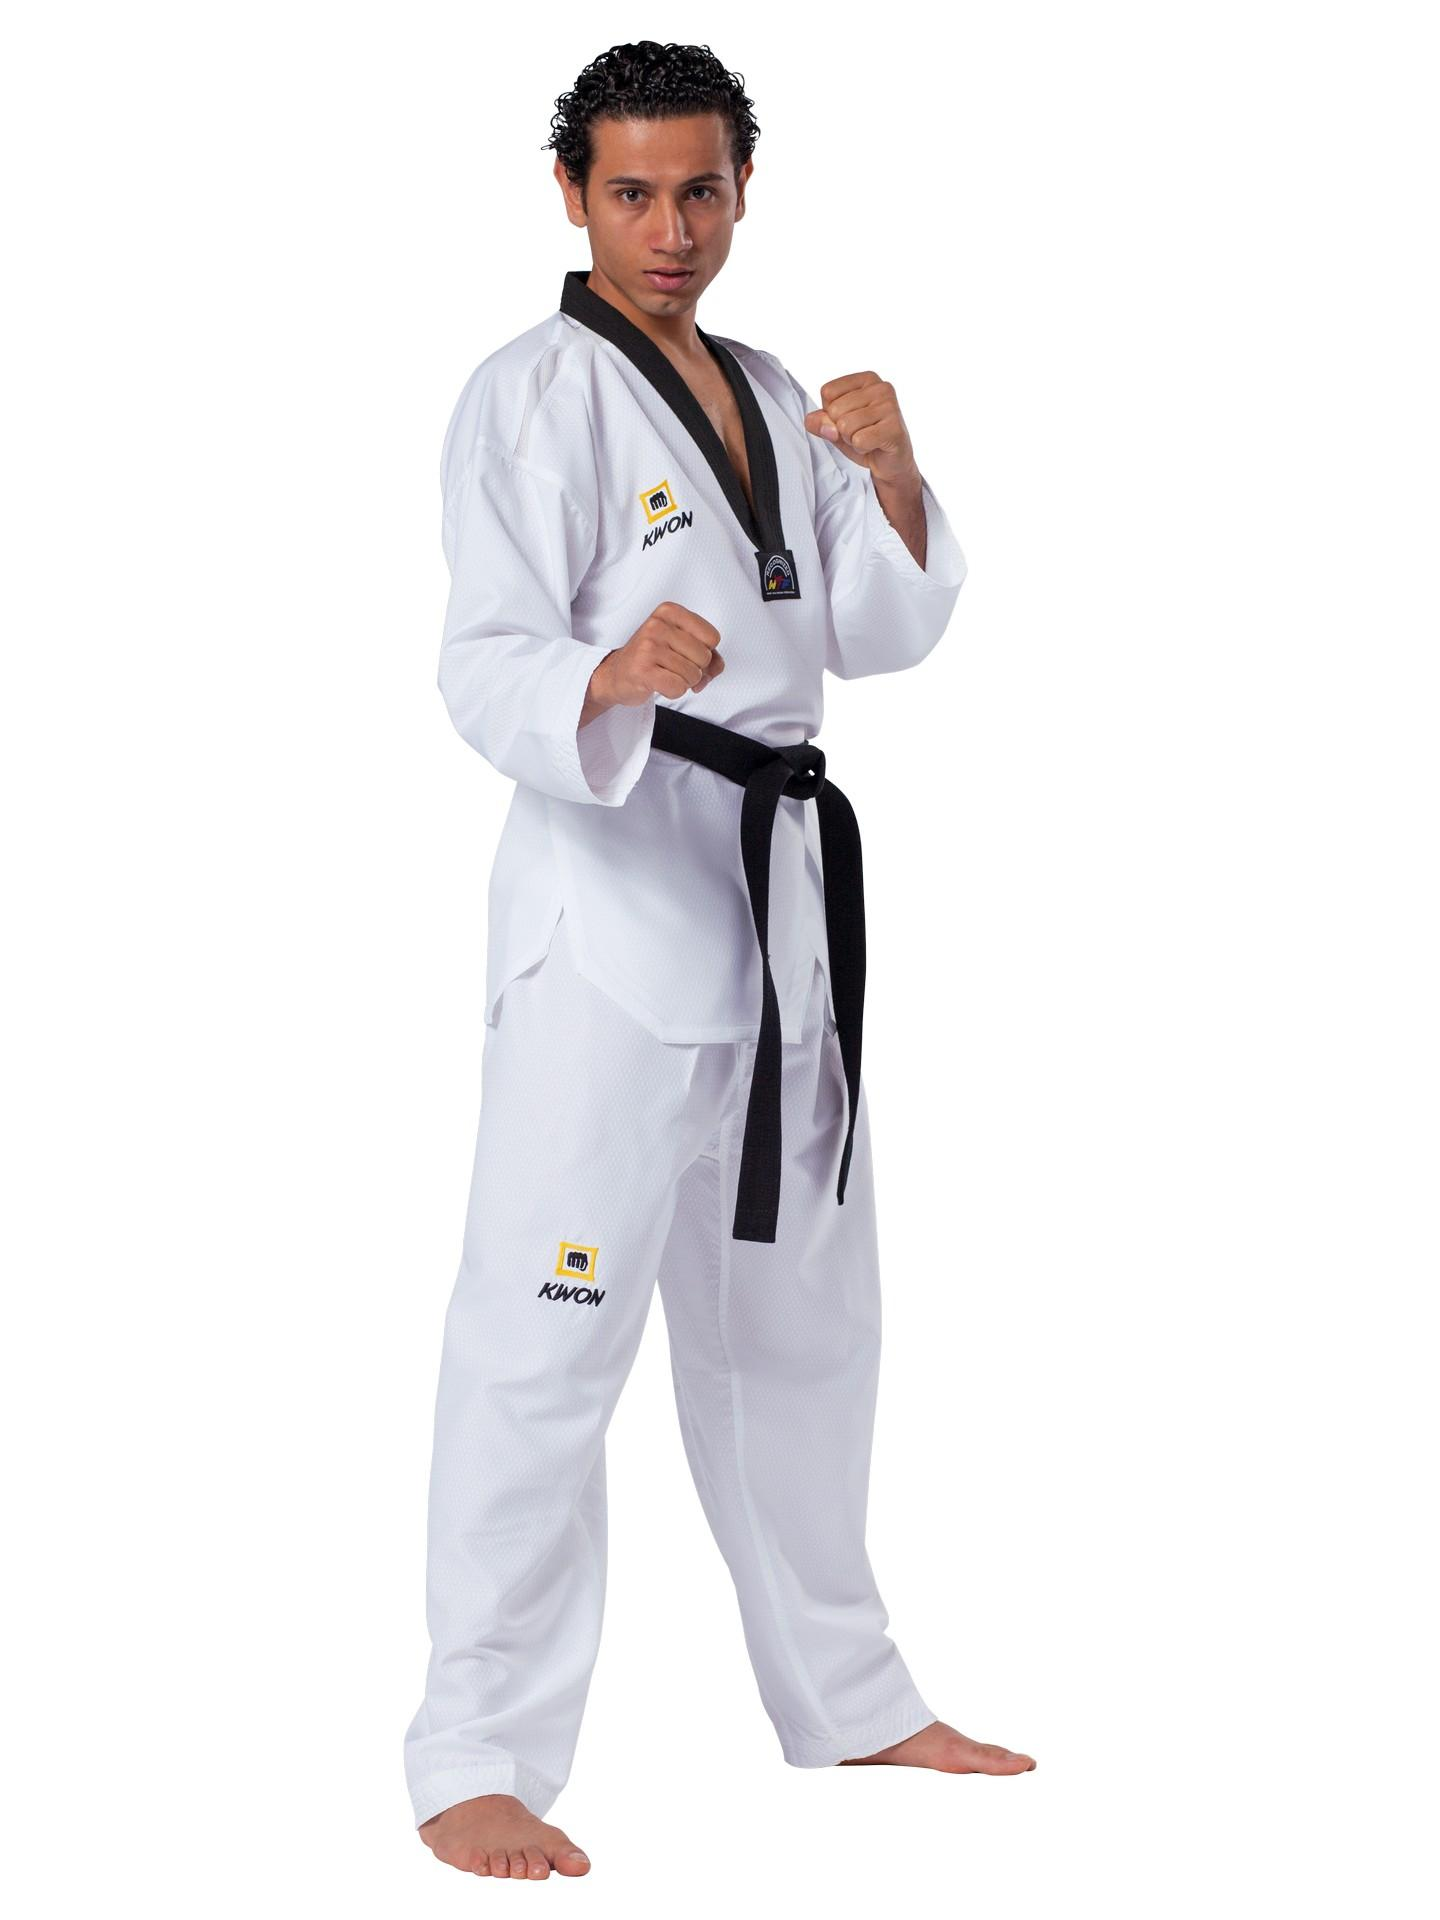 TKD UNIFORM FIGHTLITE